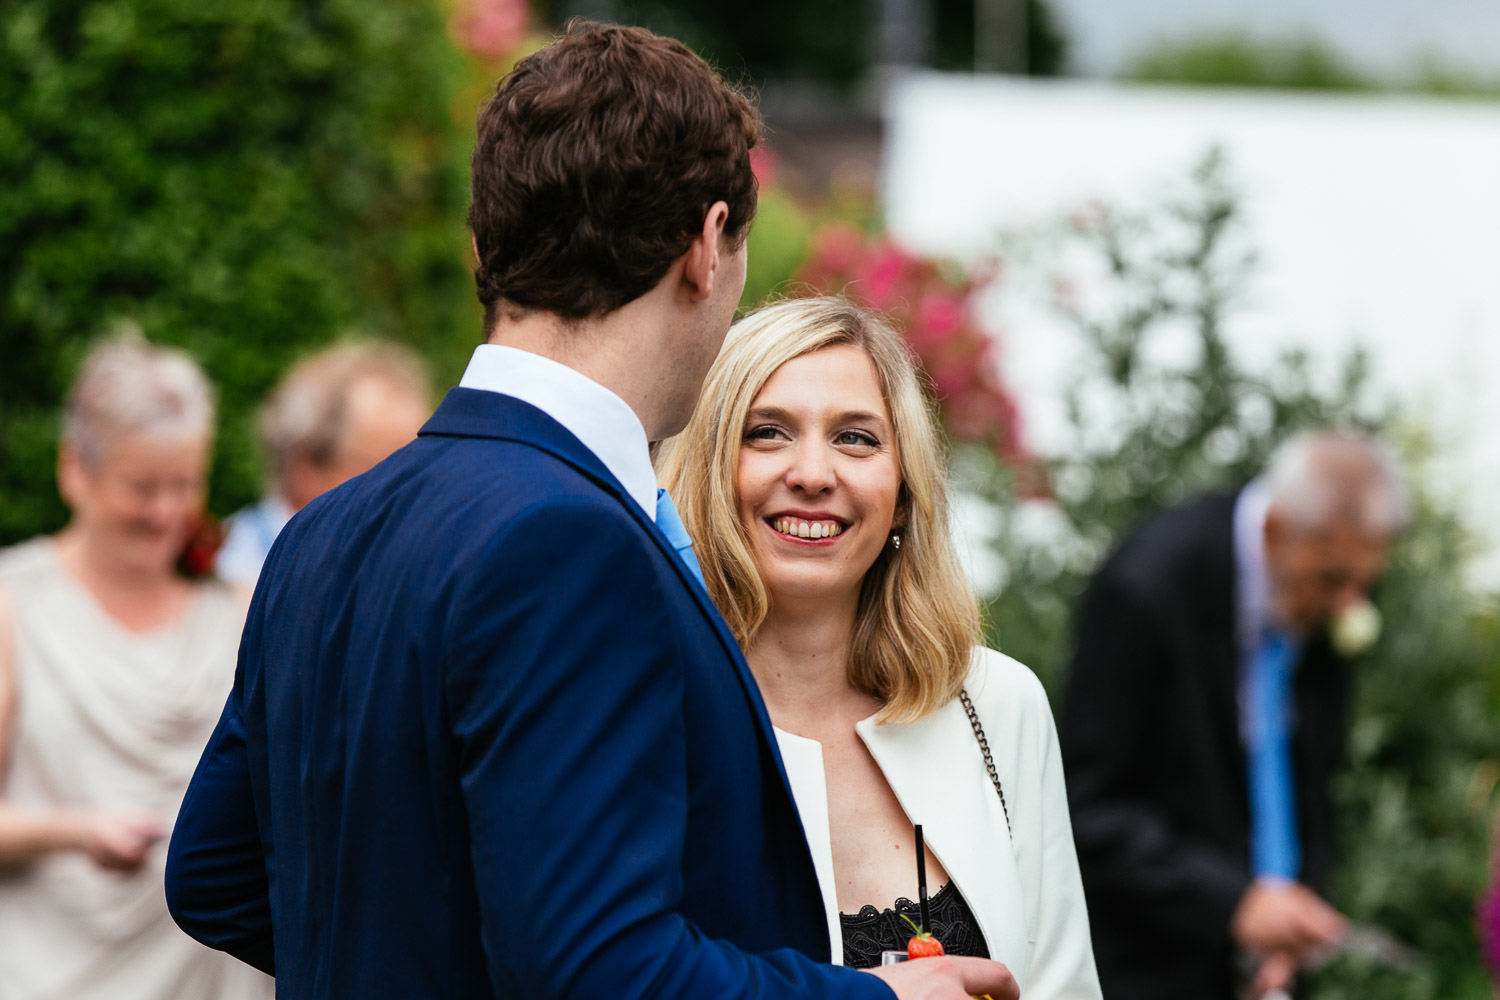 Lorna-and-Andrew-Highlights-Low-Res-44.jpg